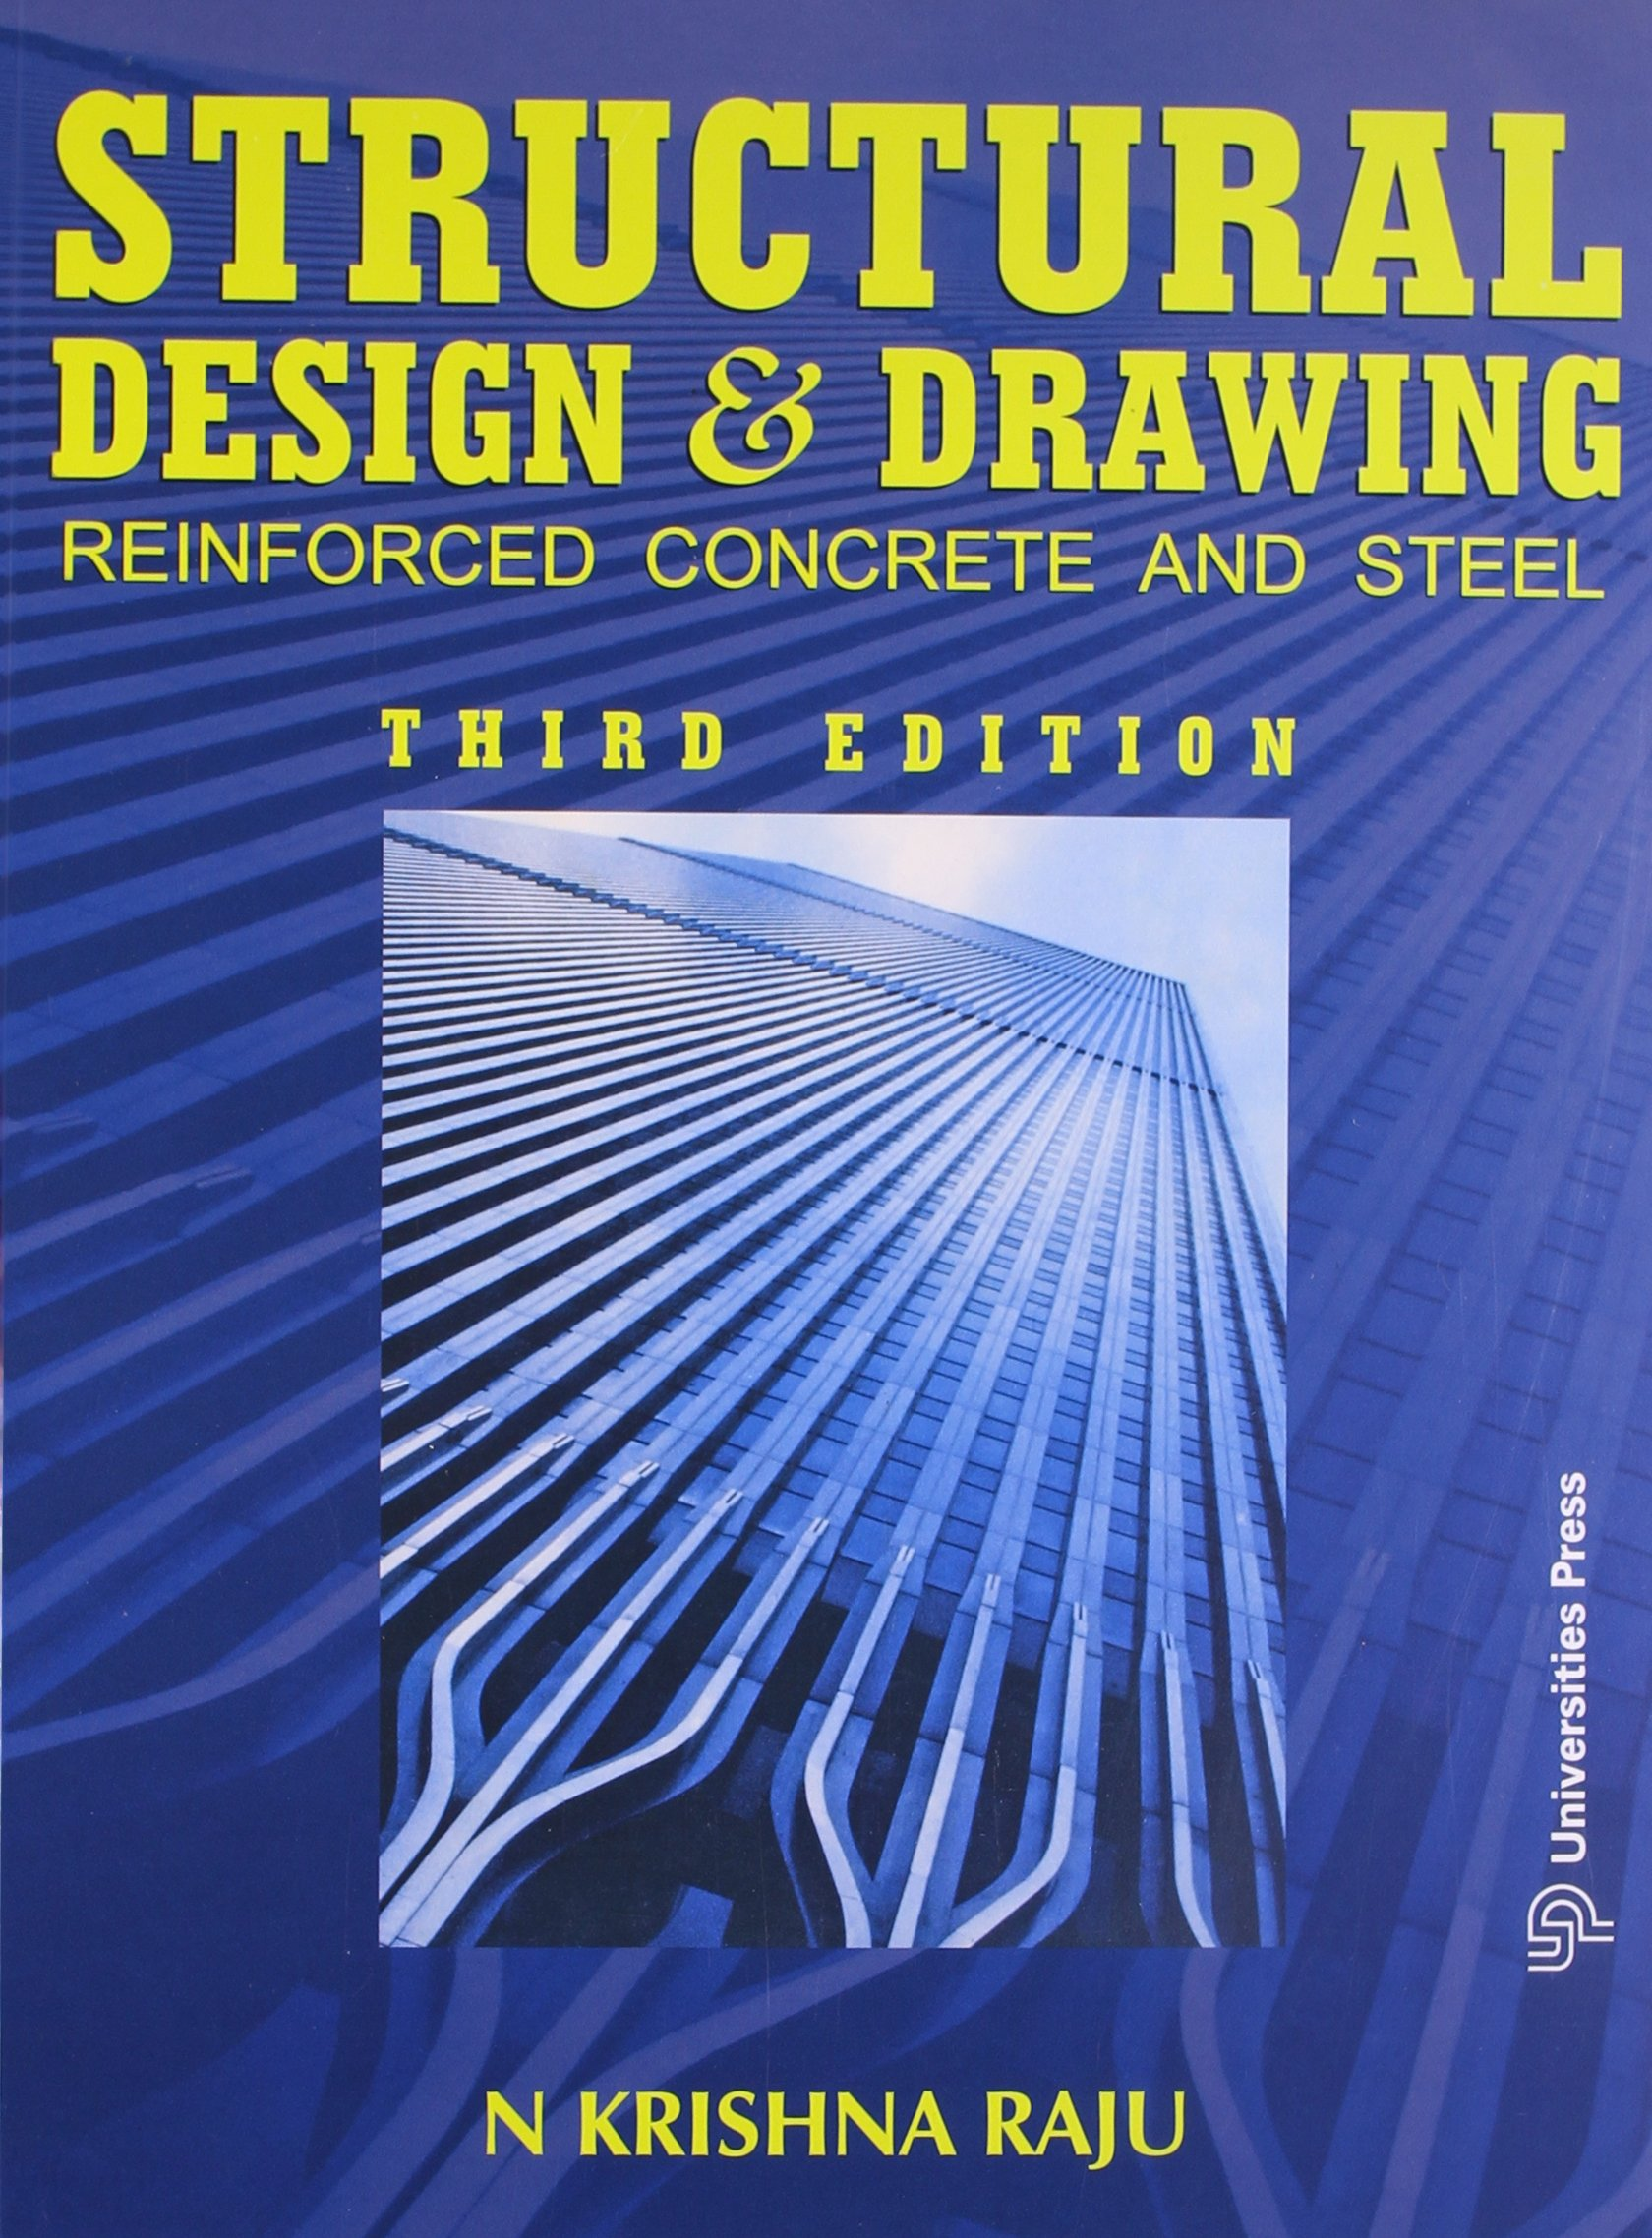 Buy Structural Design & Drawing Book Online at Low Prices in India